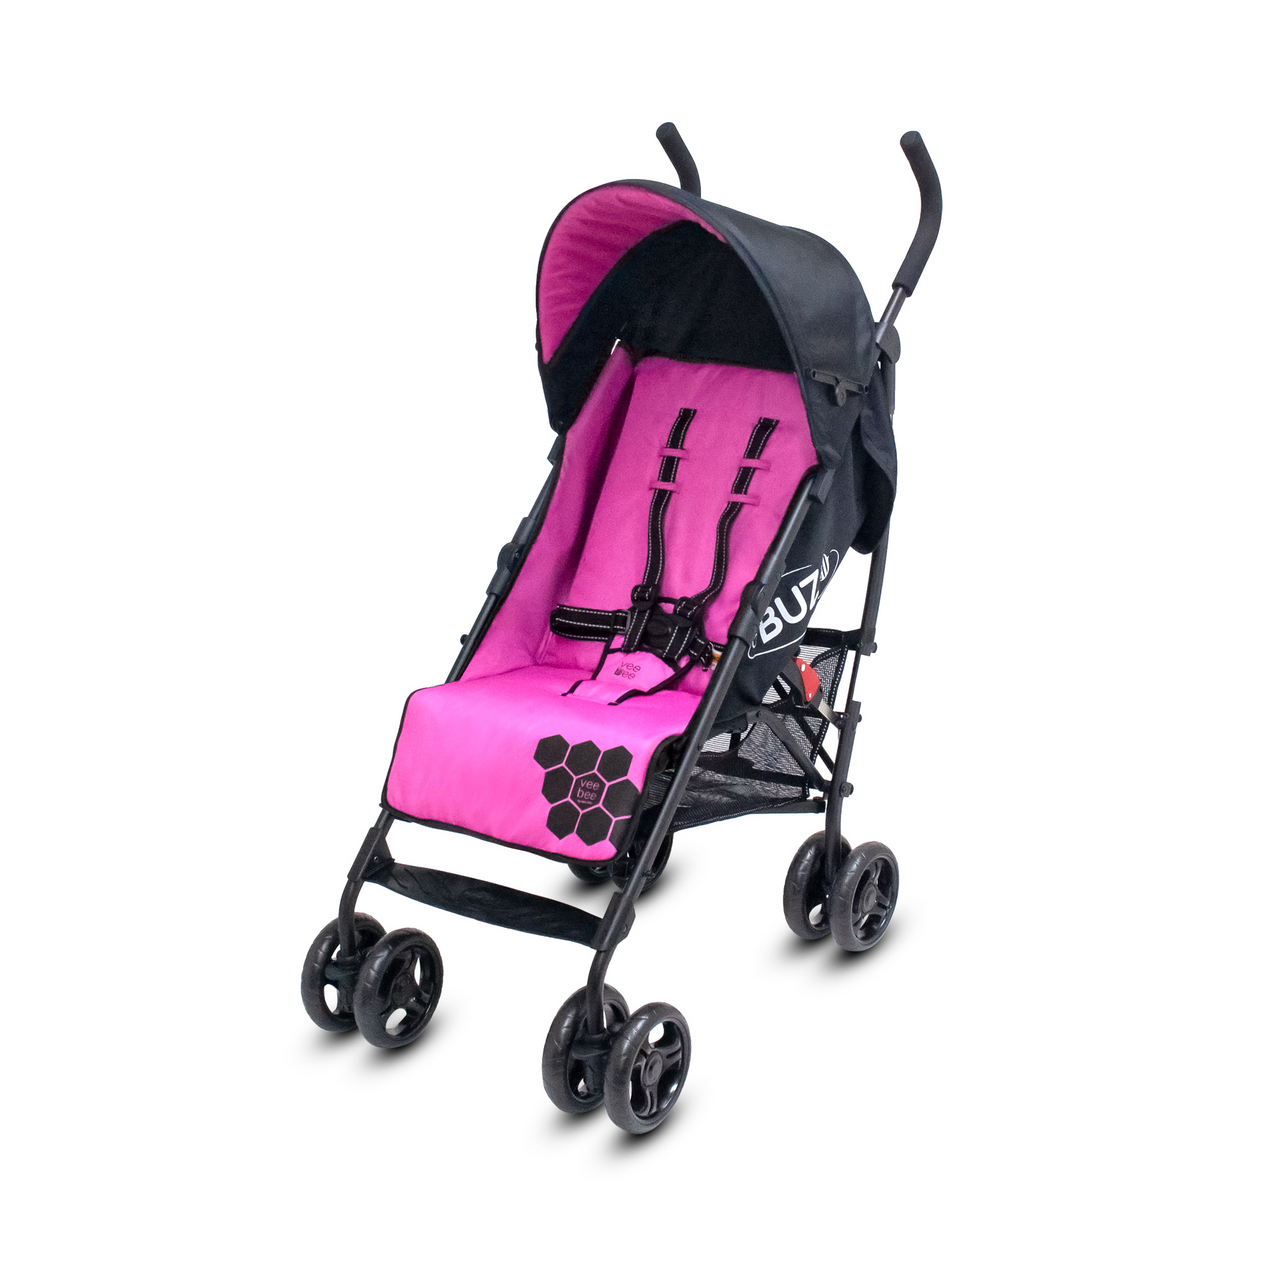 Vee Bee Buz Umbrella Stroller at Baby Barn Discounts The Vee Bee Buz Stroller is your perfect lightweight and colourful companion that suitable for newborn+.